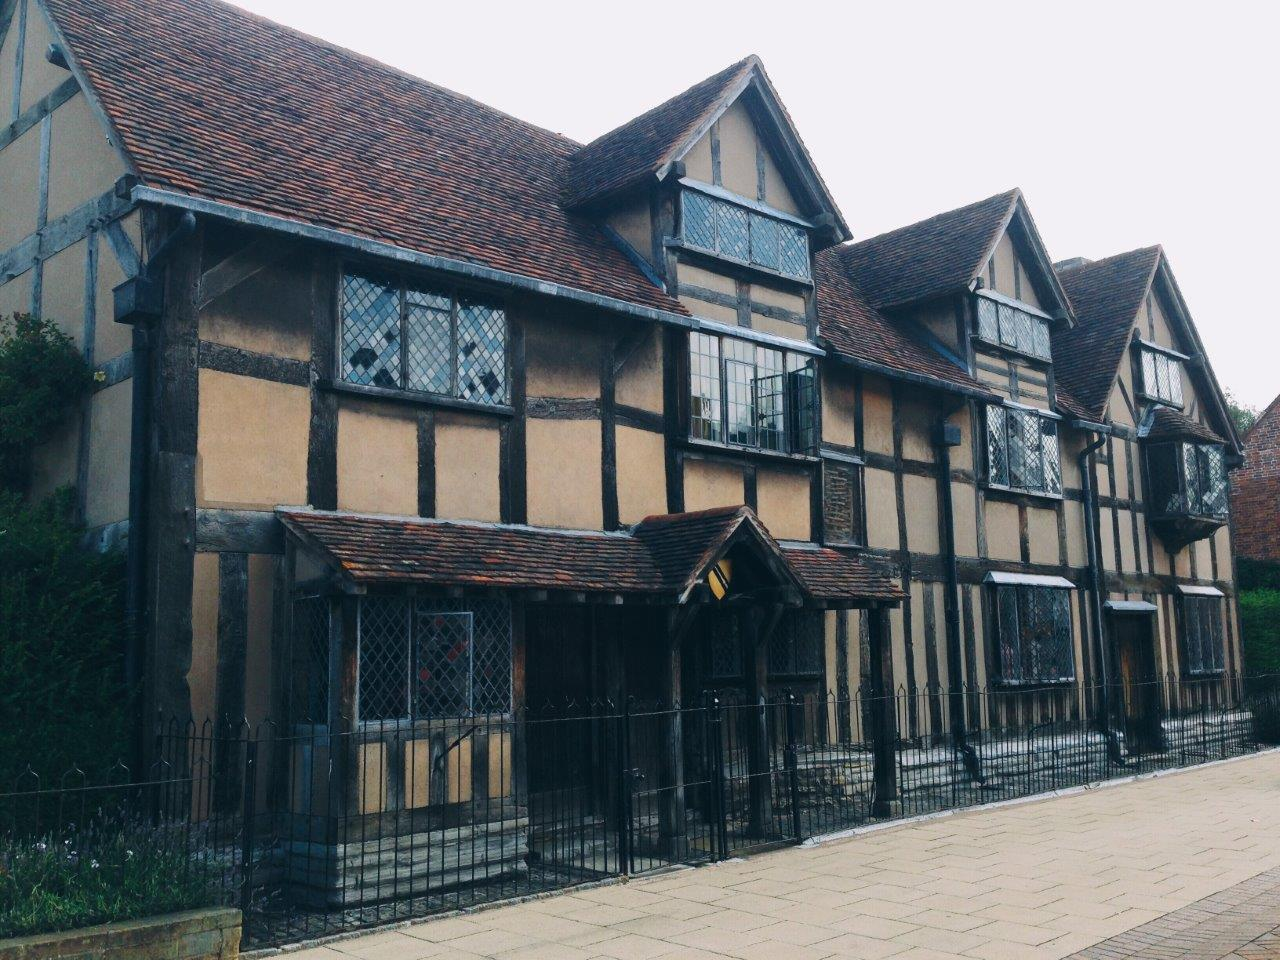 How to Spend a Day in Stratford